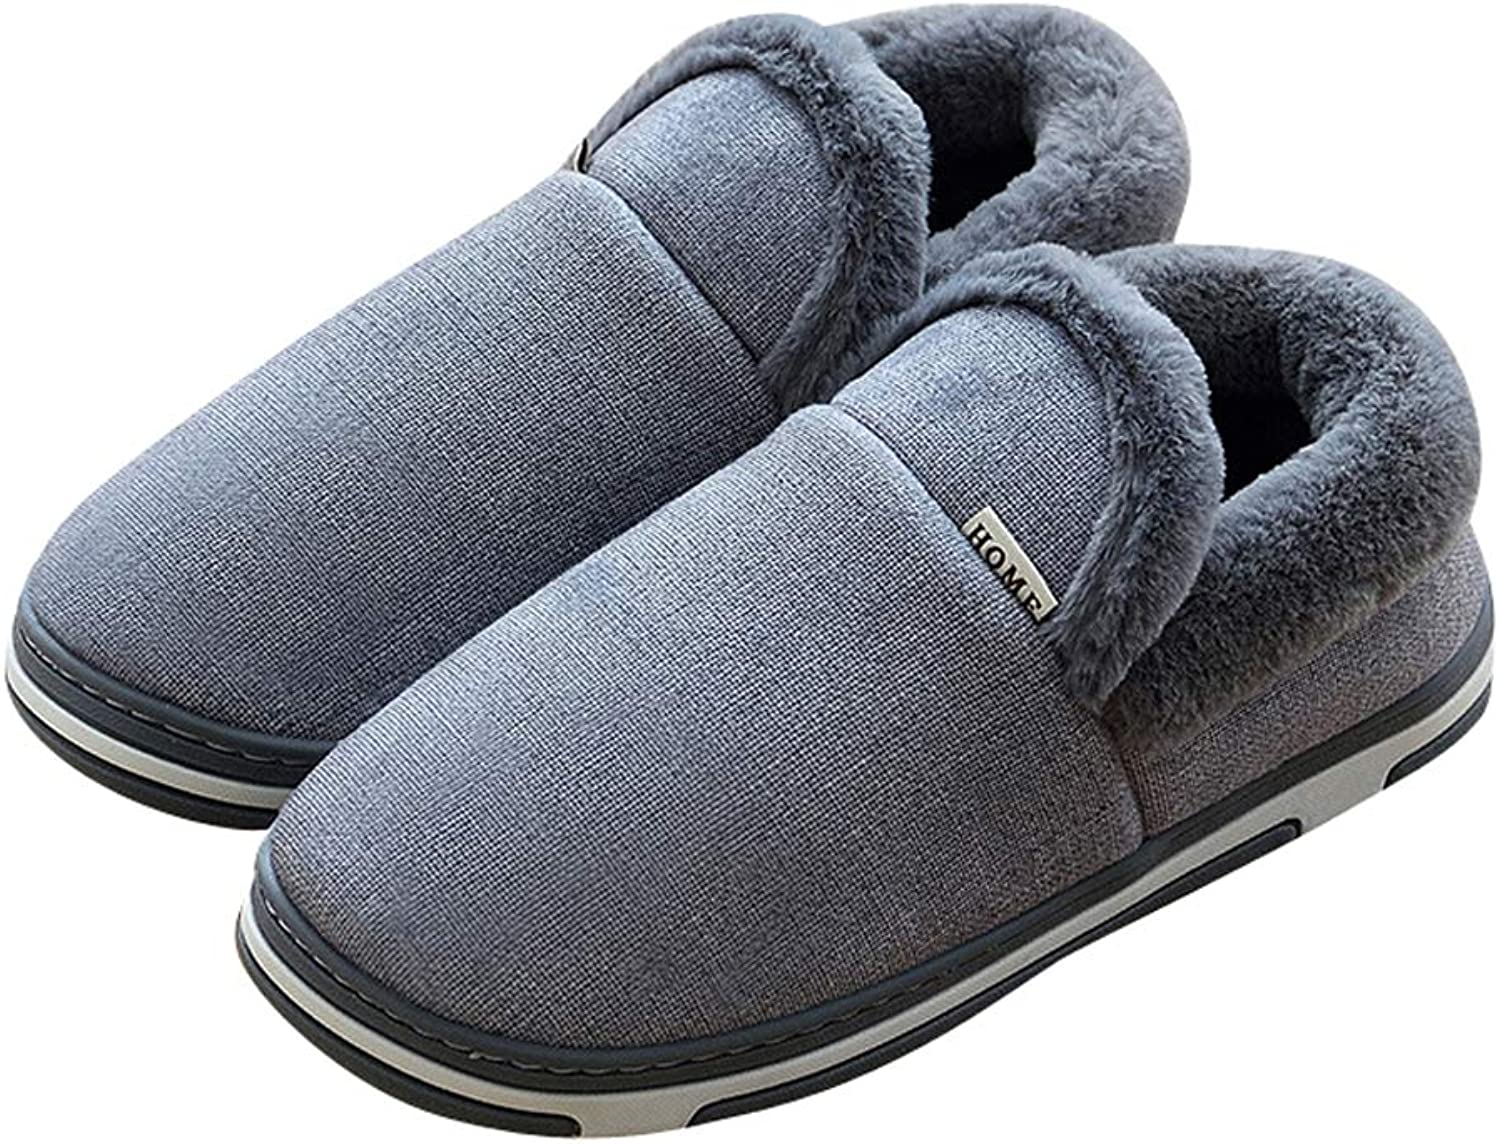 Tuoup Mens Winter Fuzzy House shoes Outdoor Indoor Bootie Slippers